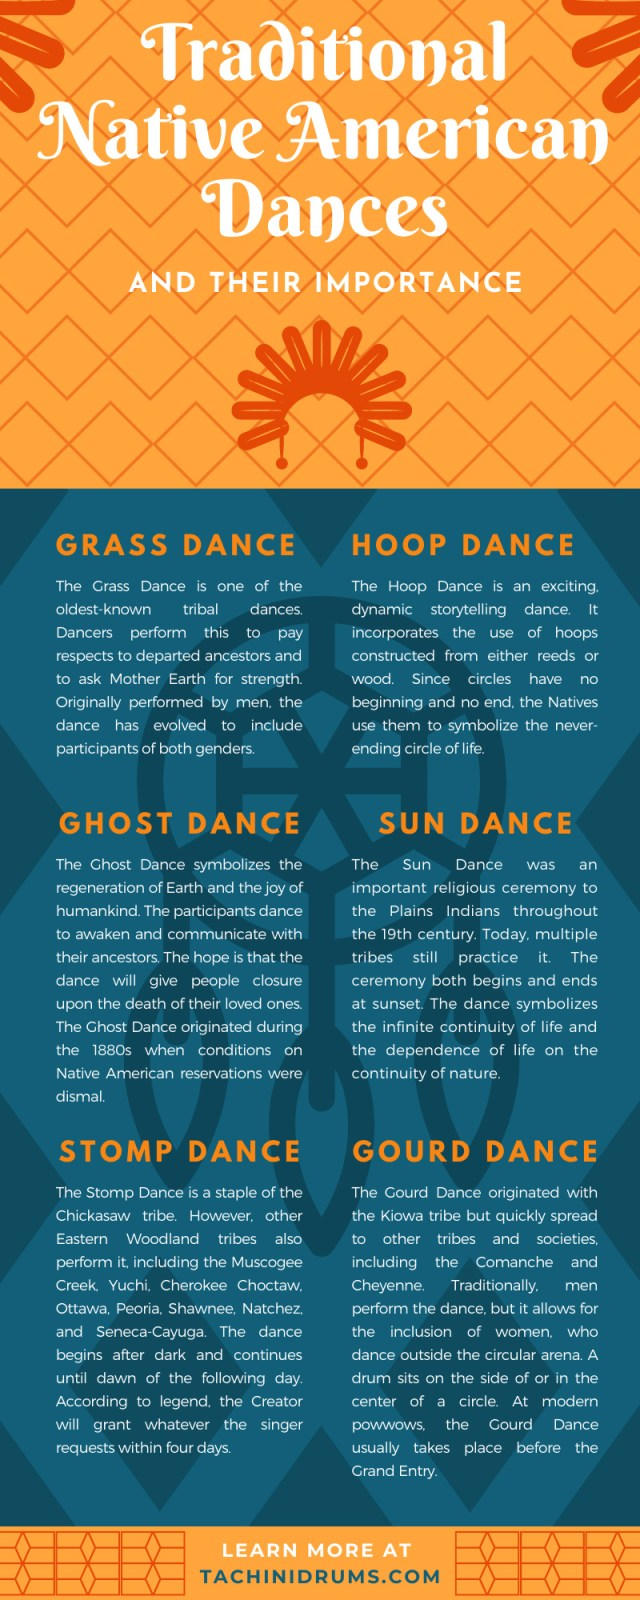 Traditional Native American Dances and Their Importance